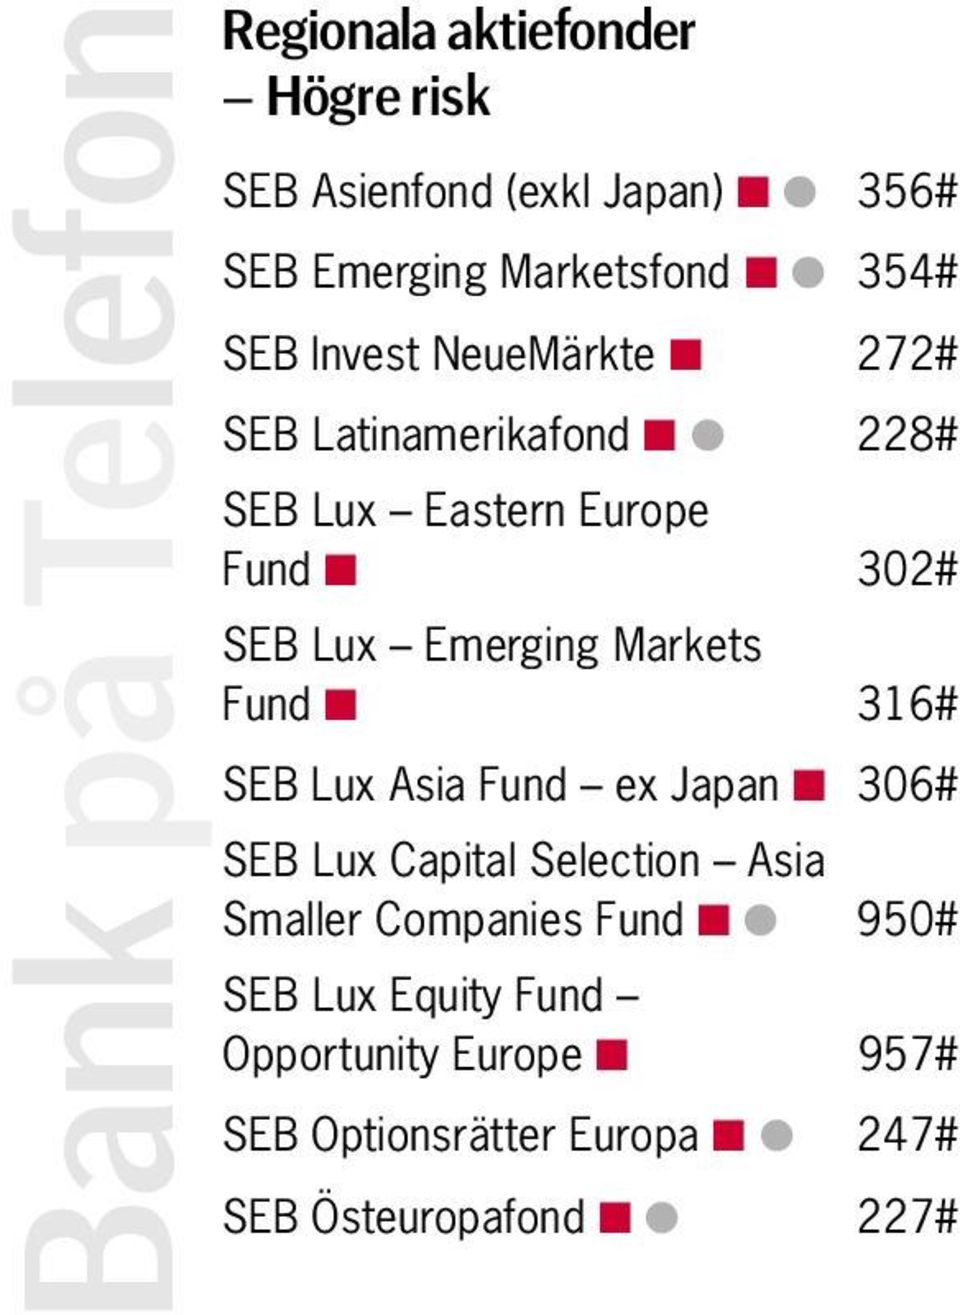 Emerging Markets Fund 316# SEB Lux Asia Fund ex Japan 306# SEB Lux Capital Selection Asia